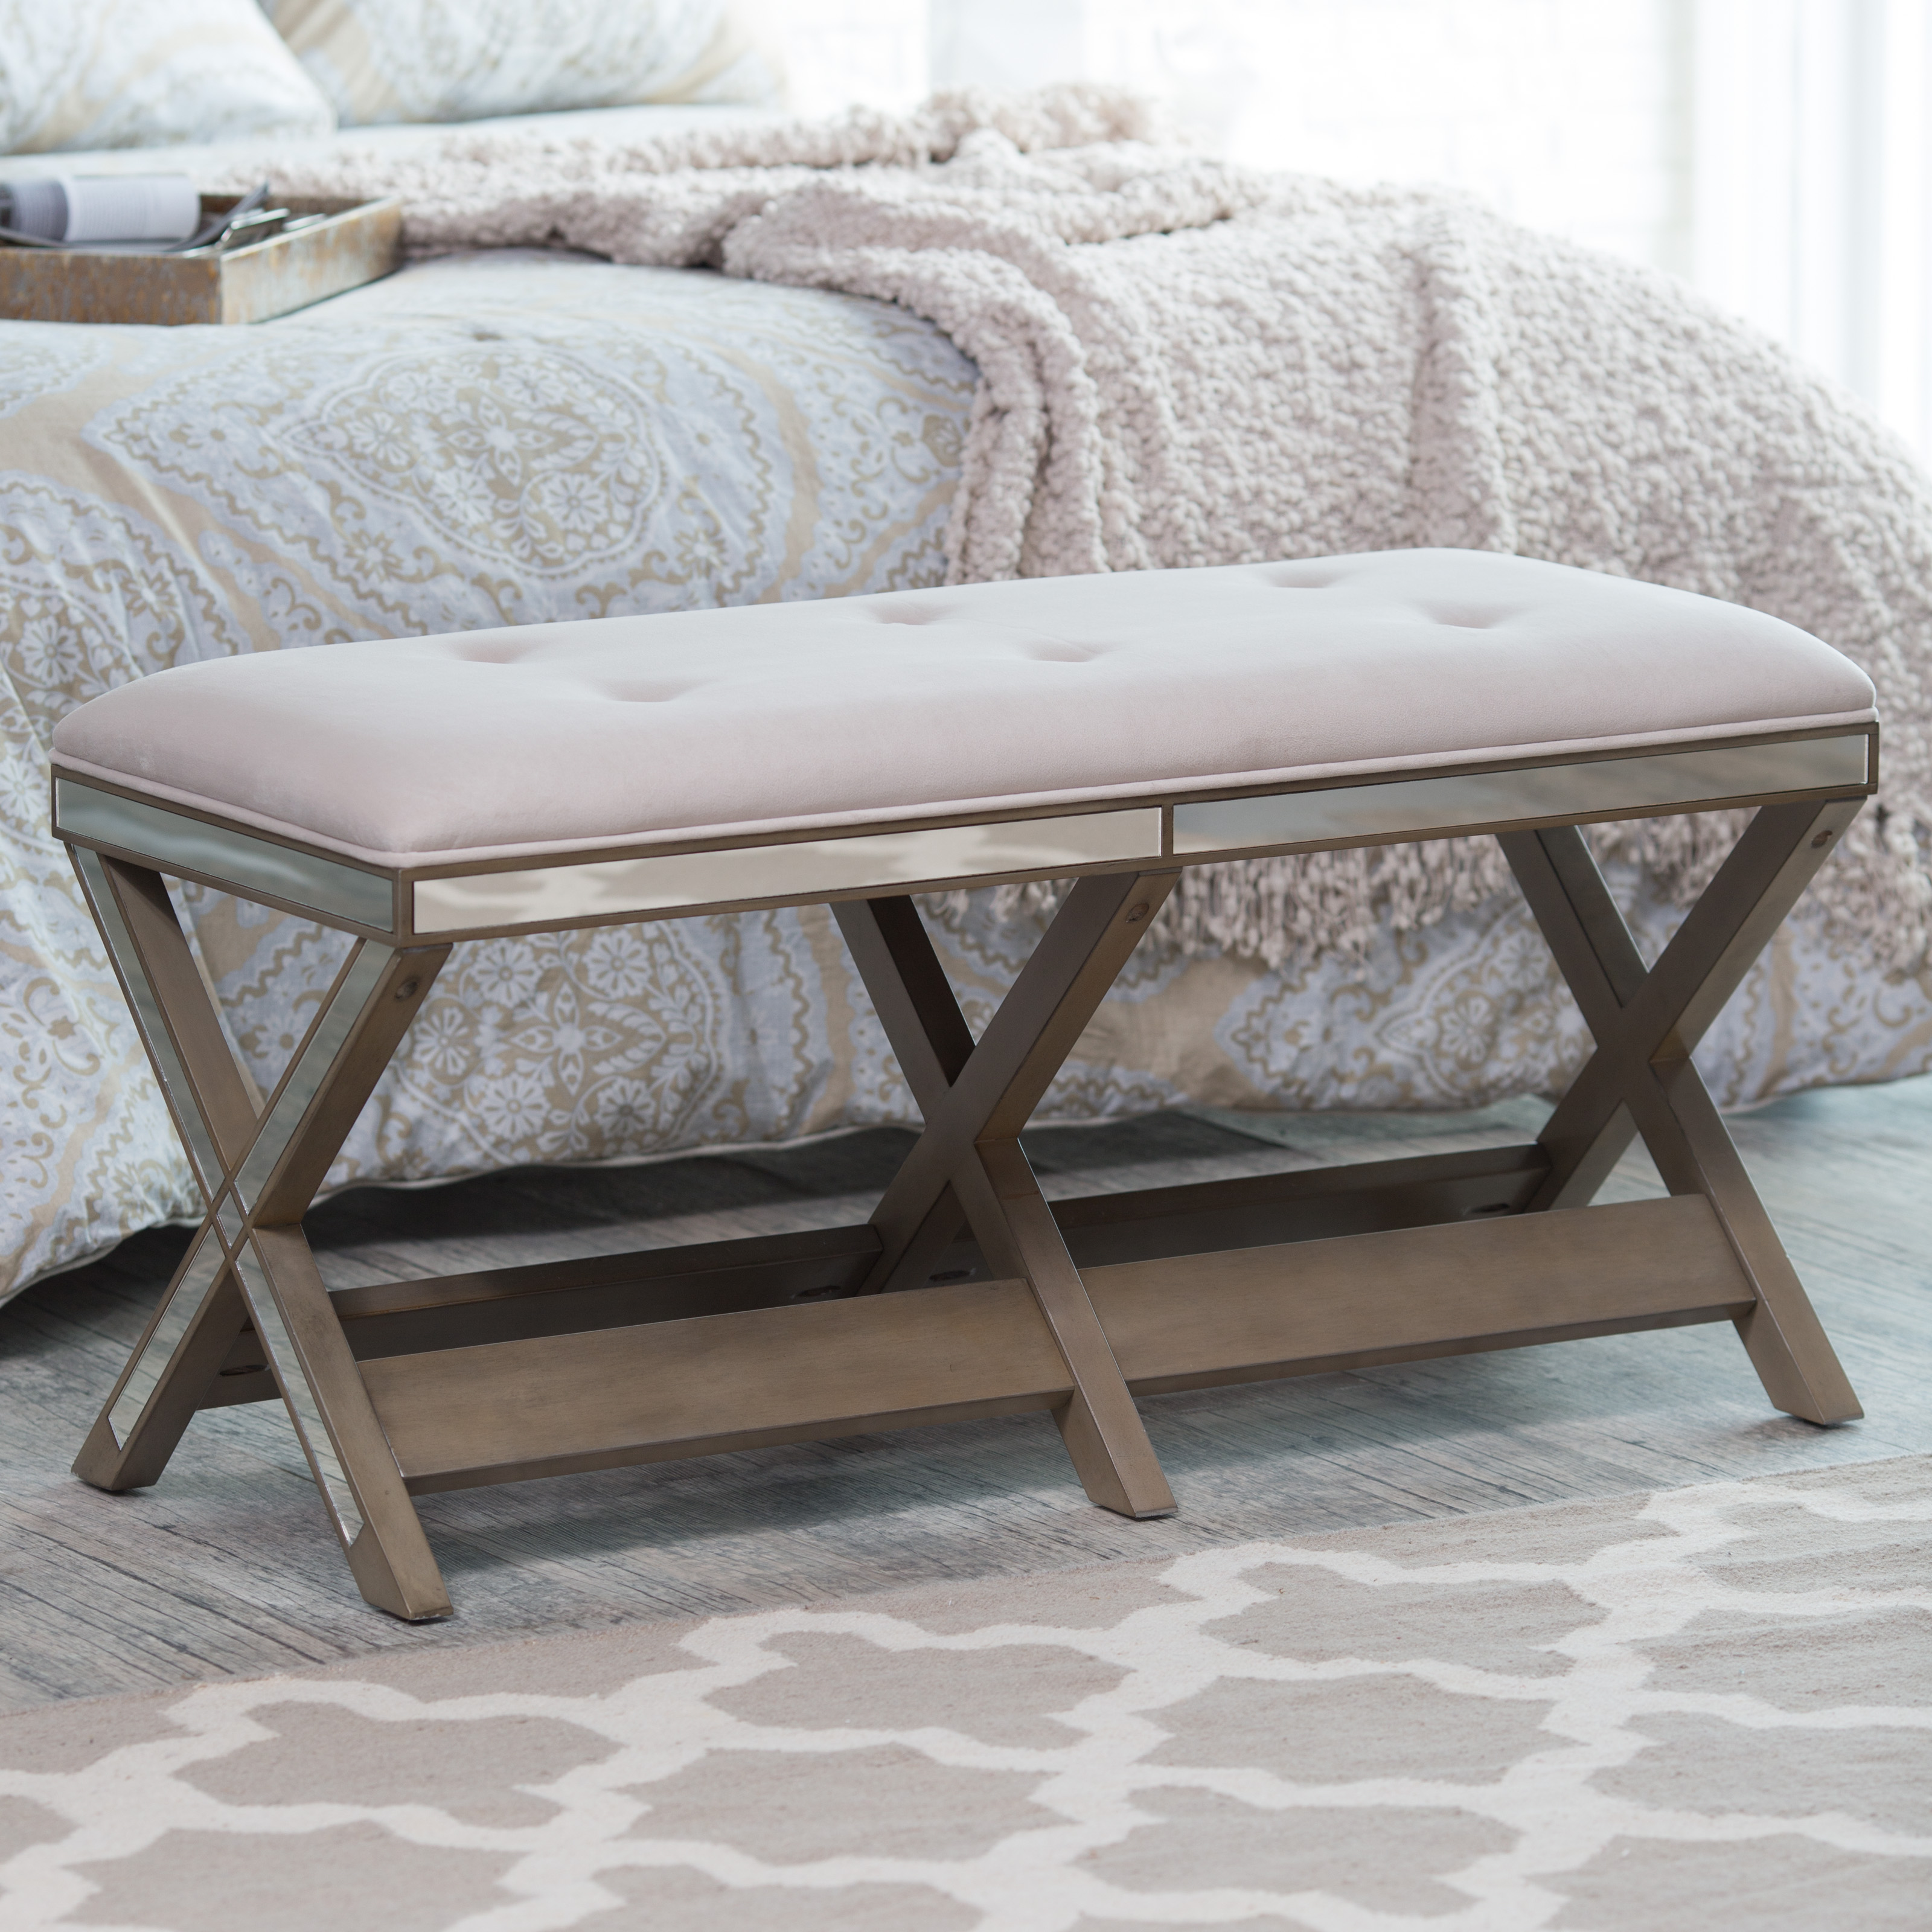 chair bed stool covers for sale australia belham living cushioned indoor bench with mirrored frame